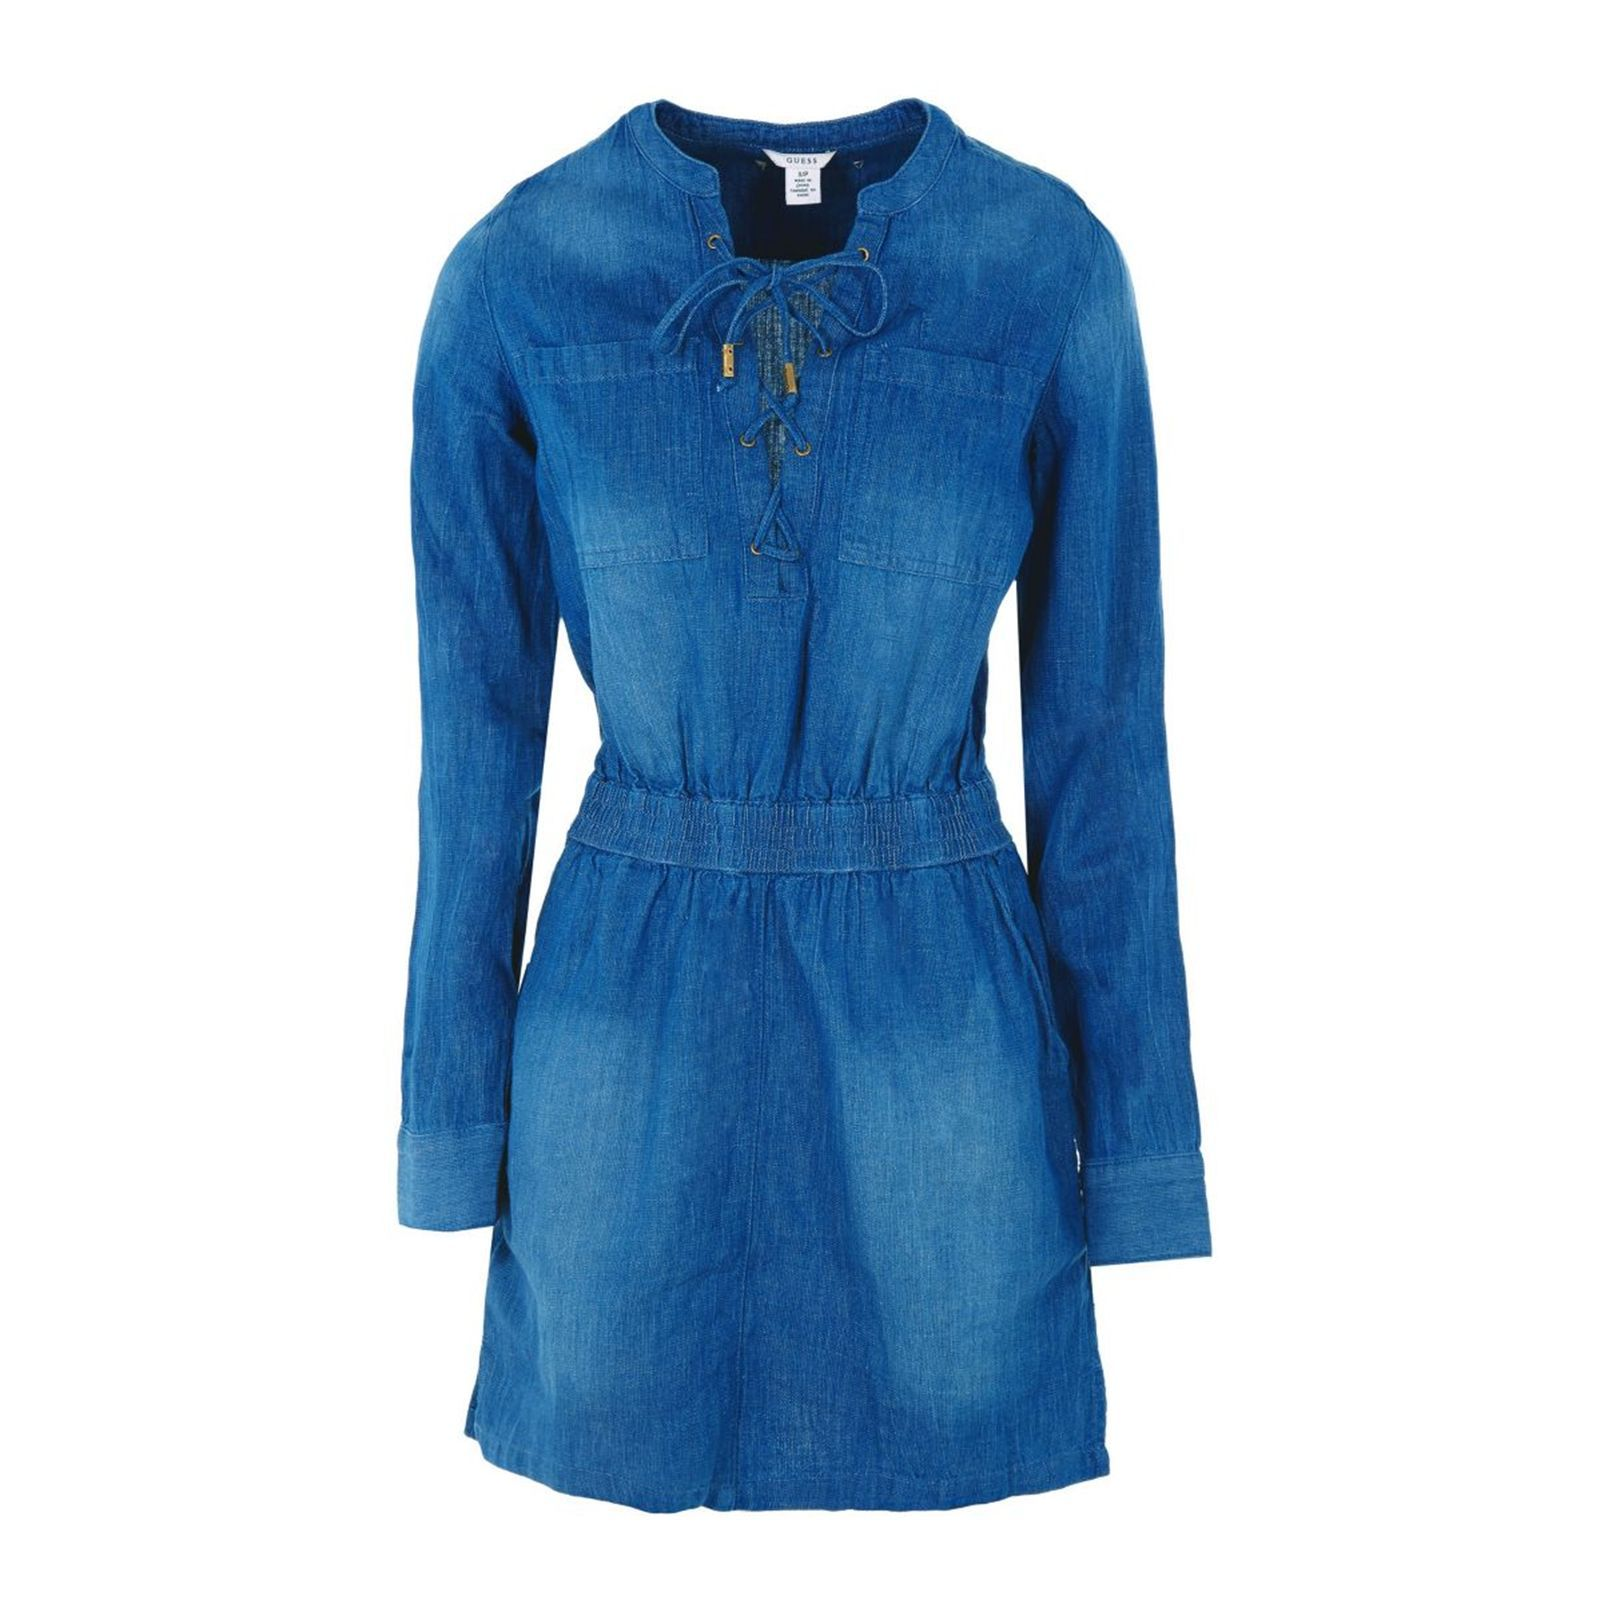 Guess Robe combinaison - denim bleu